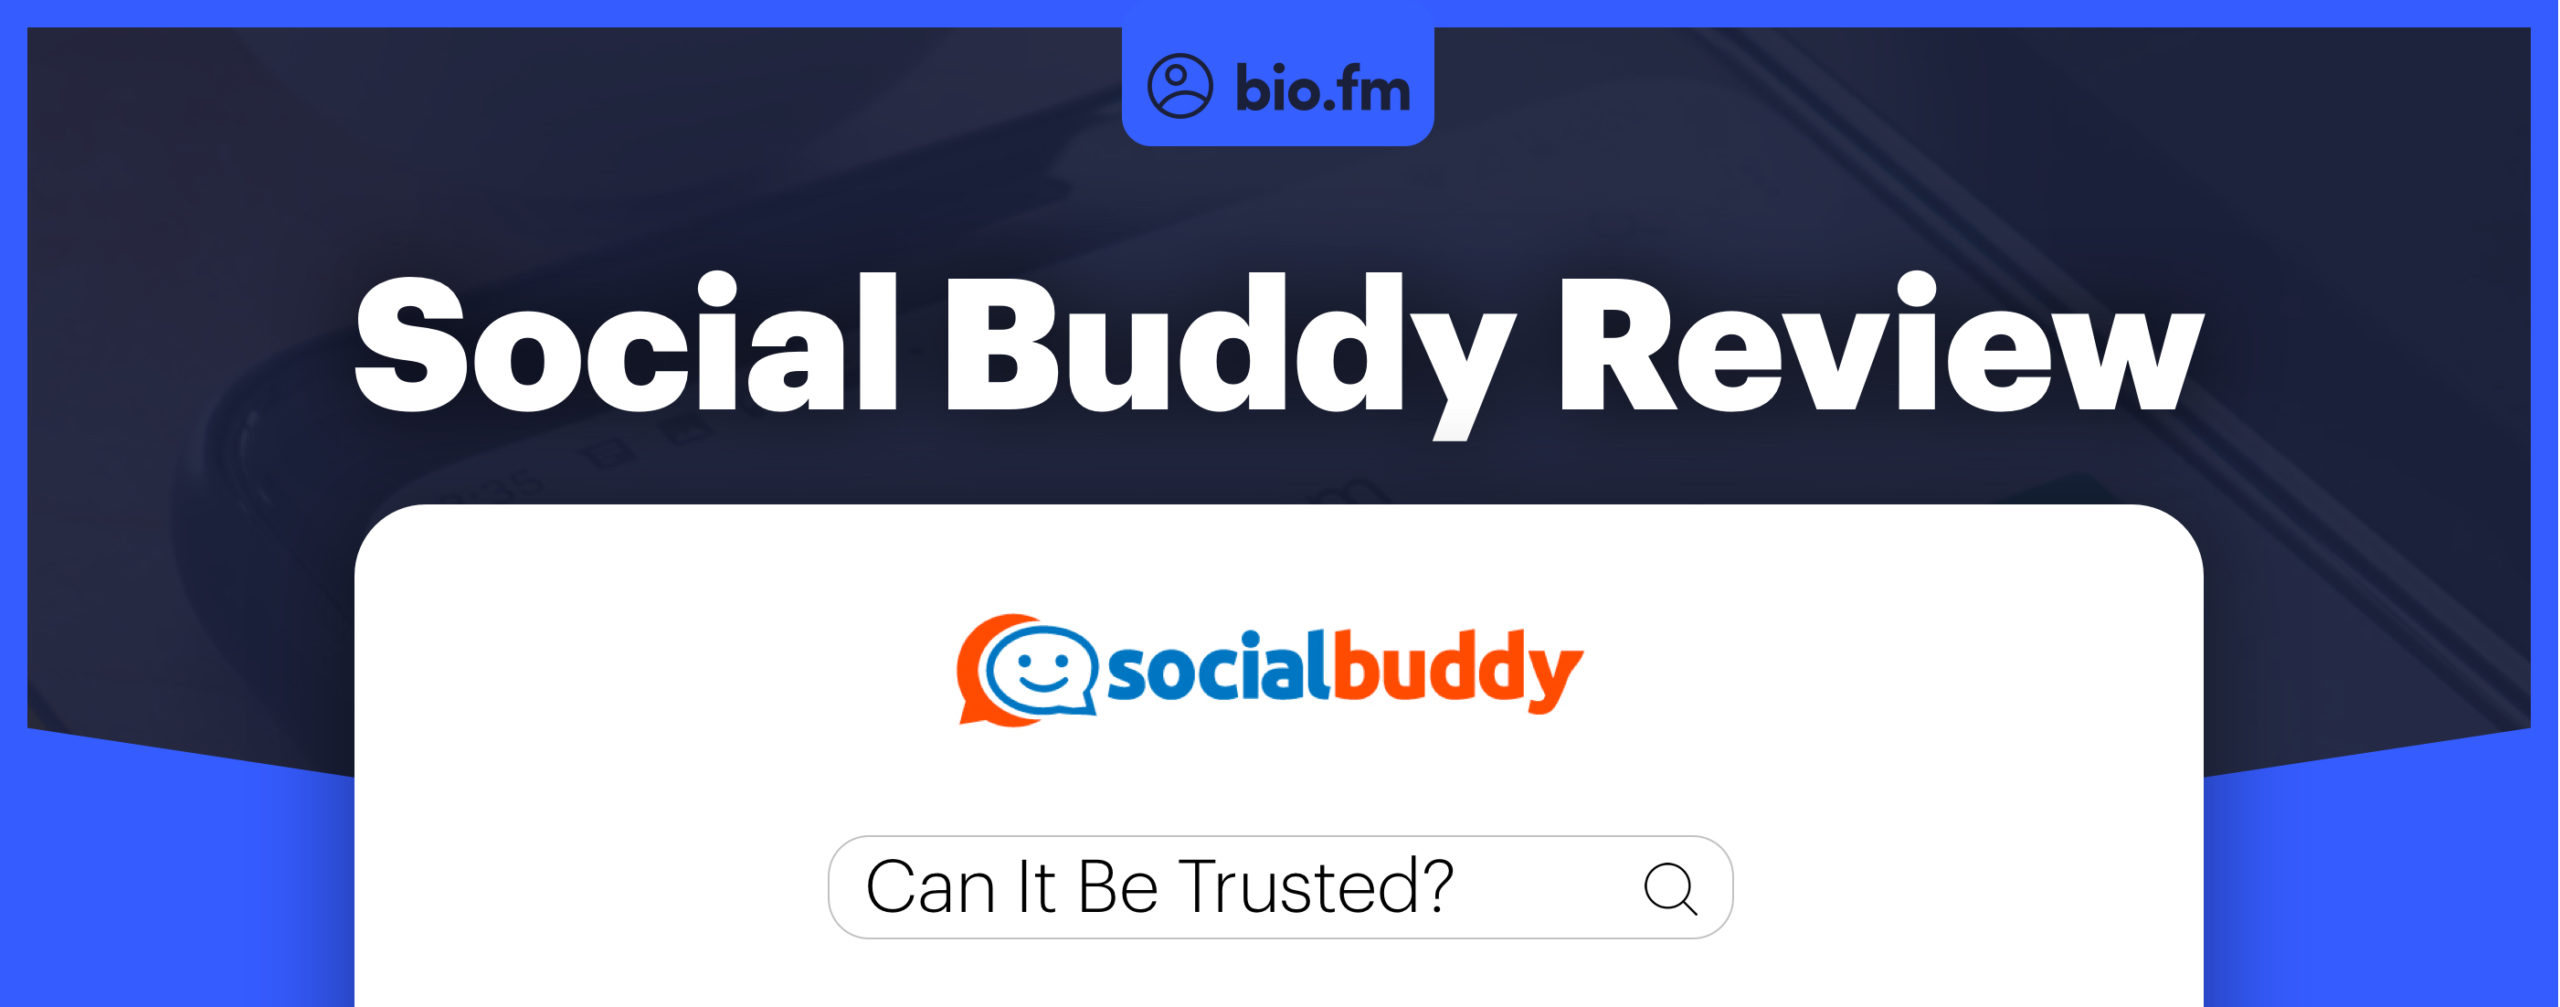 social buddy review featured image